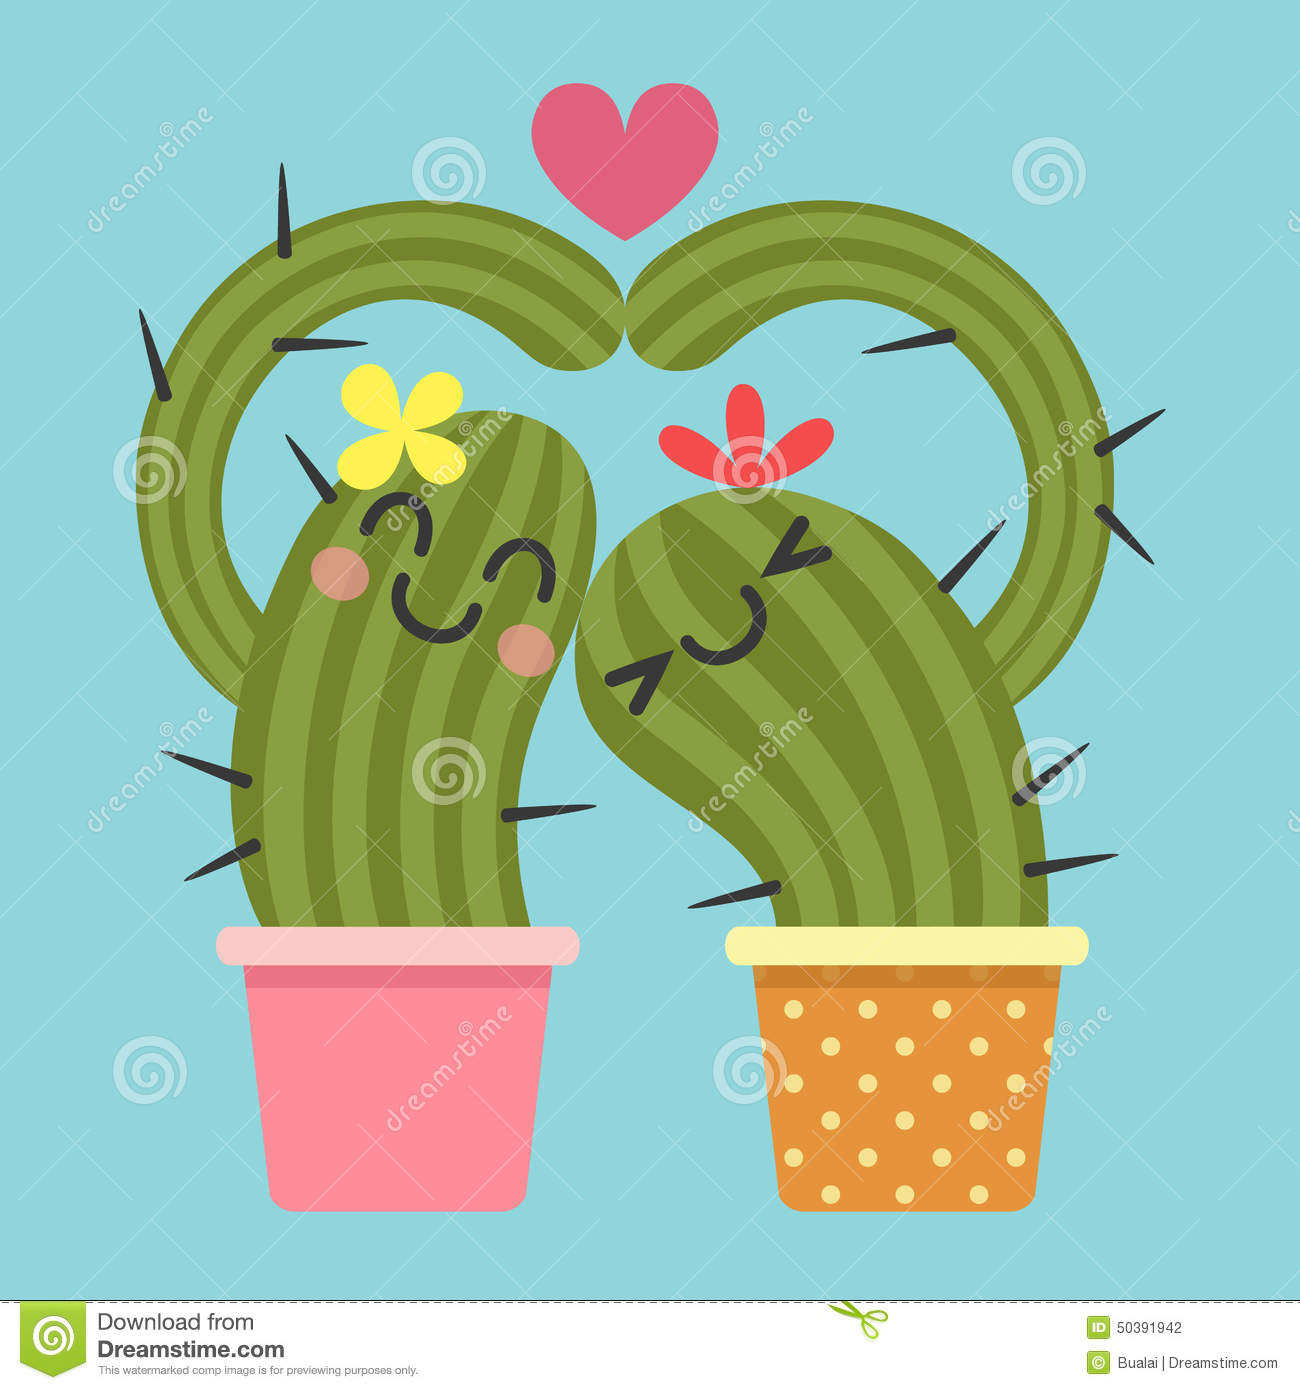 Love Cute Couple Wallpaper Download Loving Couple Of Cactus Stock Vector Image 50391942